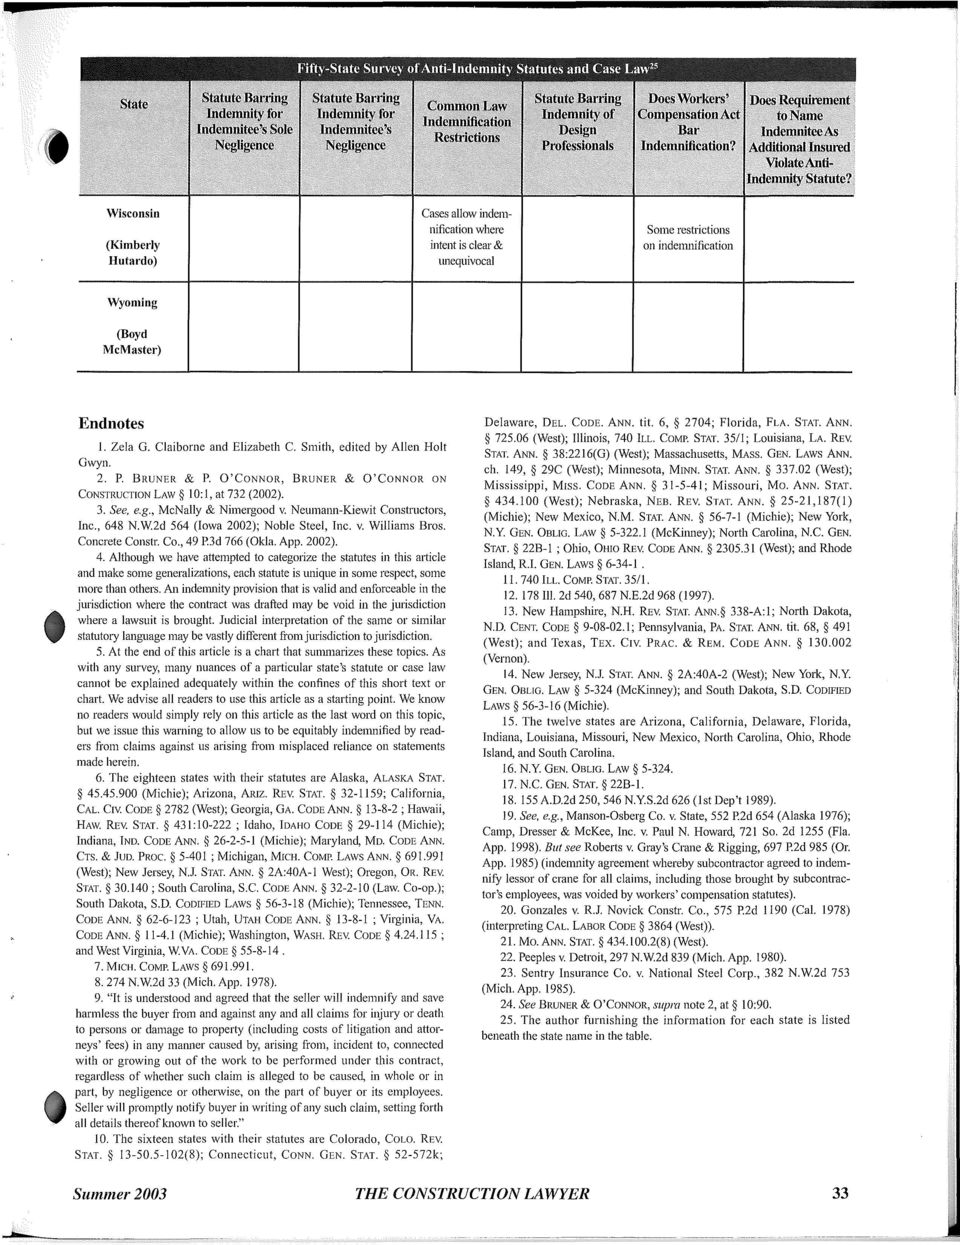 Concrete Constr. Co., 49 P.3d 766 (Okla. App. 2002). 4. Although we have attempted to categorize the statutes in this miicle and make some generalizations, each statute is unique in some respect, some more than others.